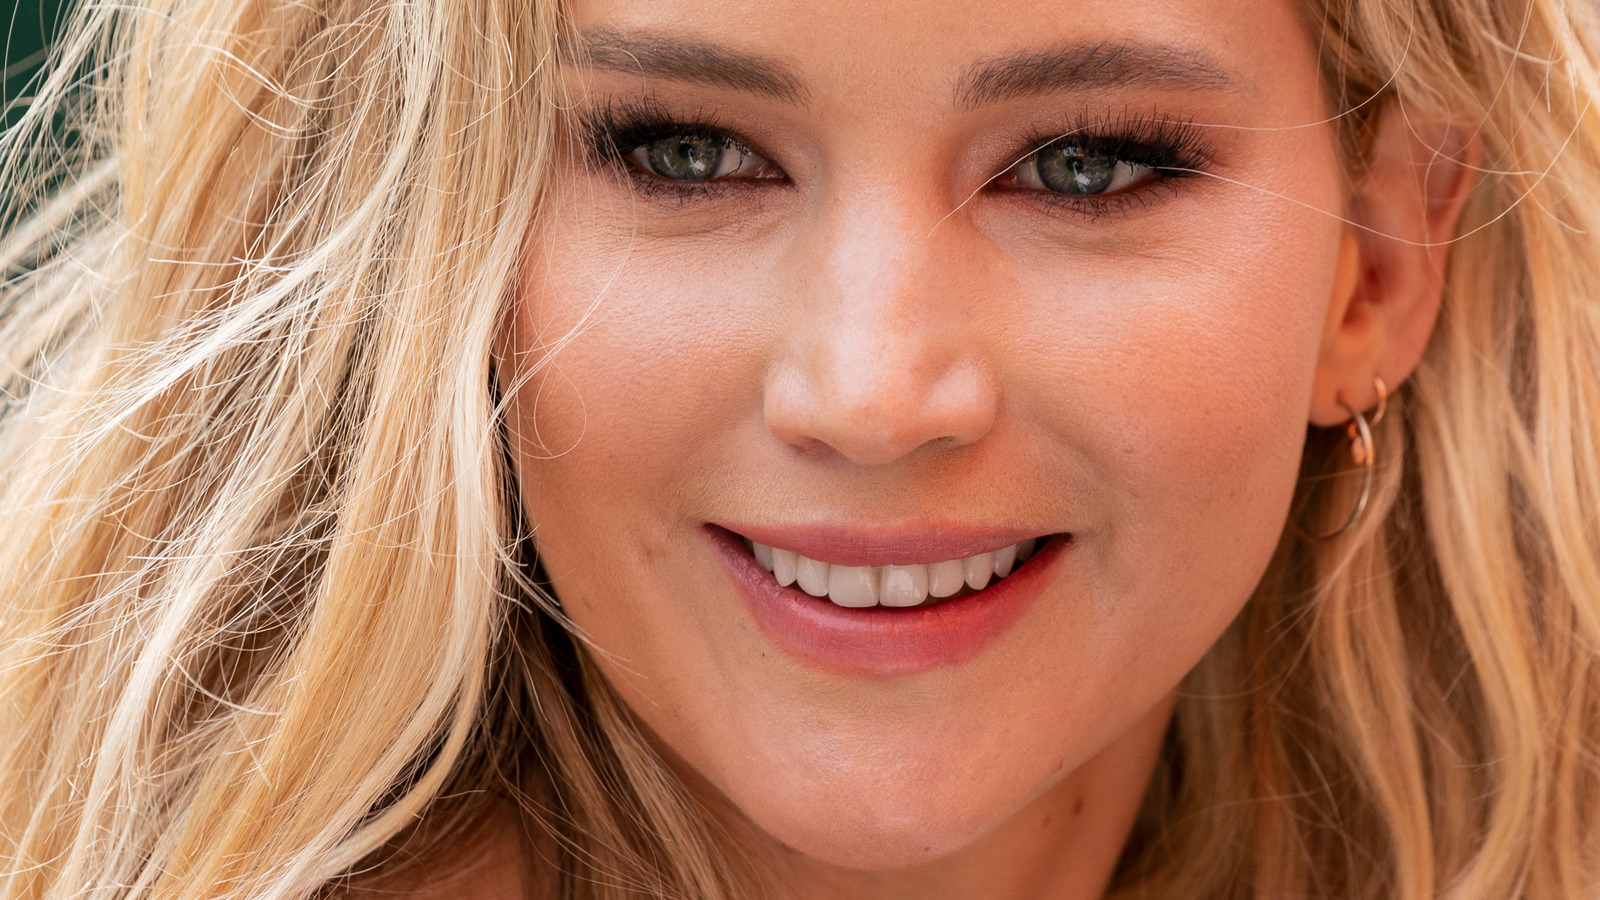 Jennifer Lawrence Catch on Premiere of The Hunger Games